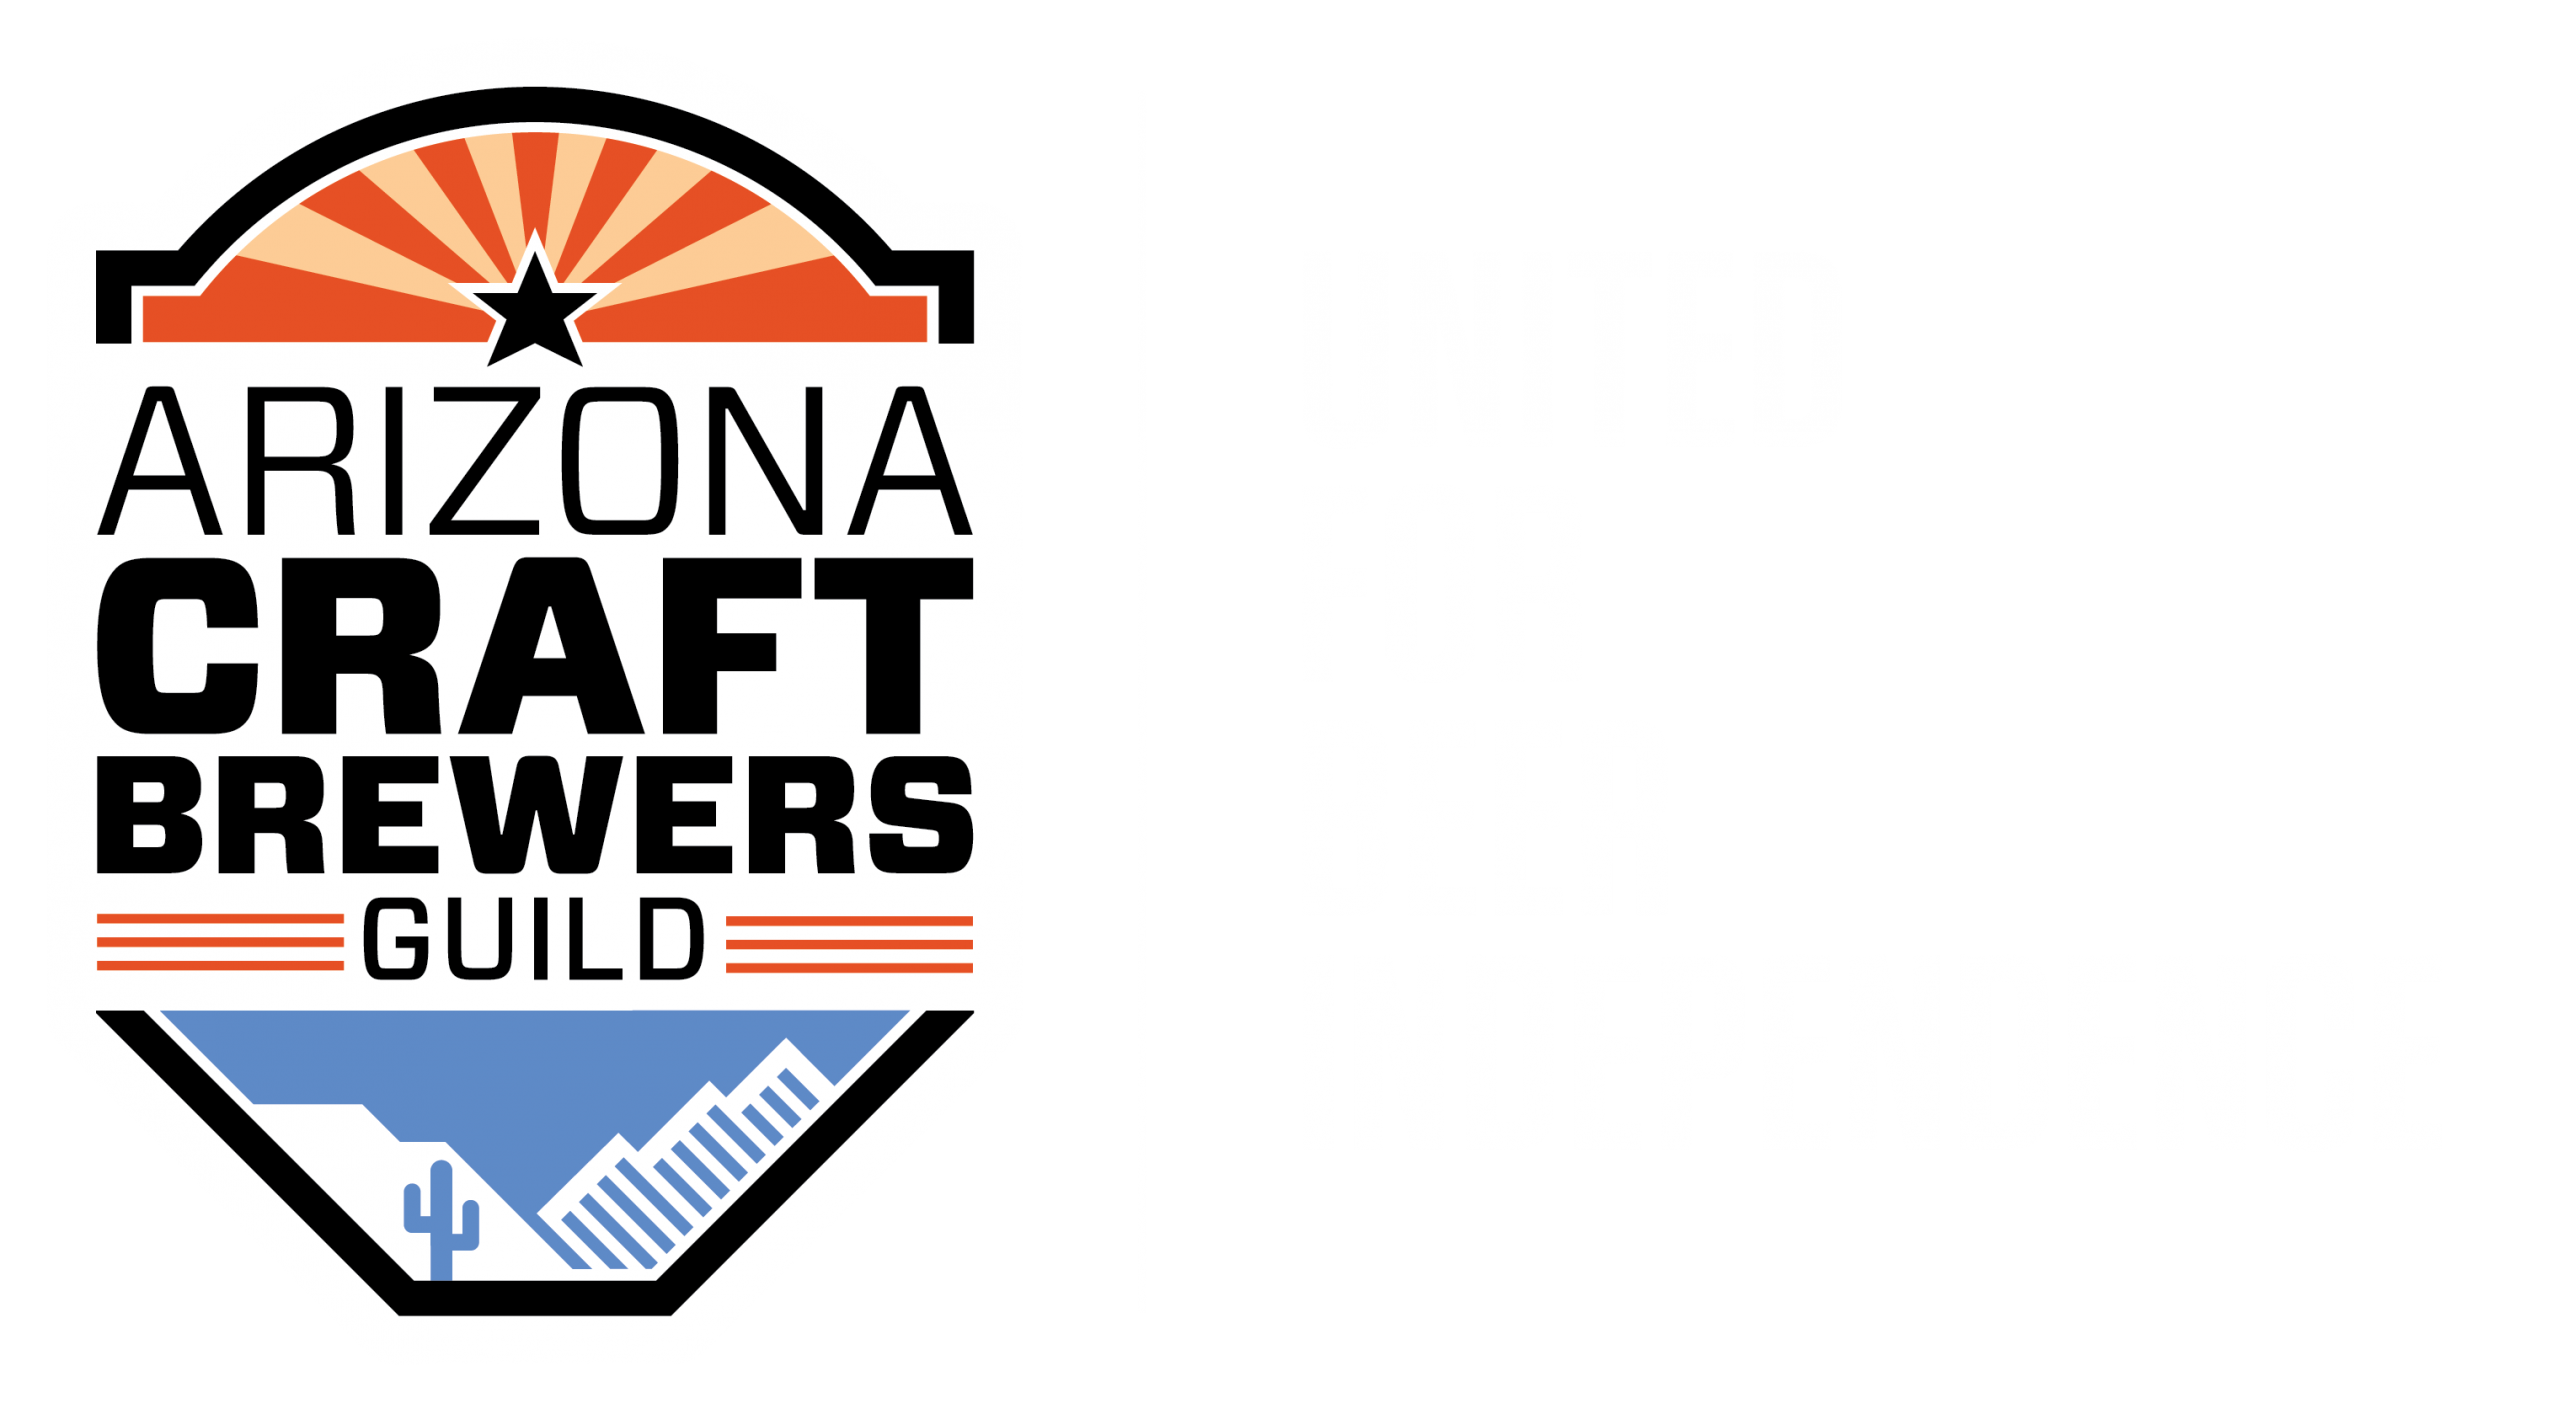 HELLUVA Brewing Company | Arizona Craft Brewers Guild